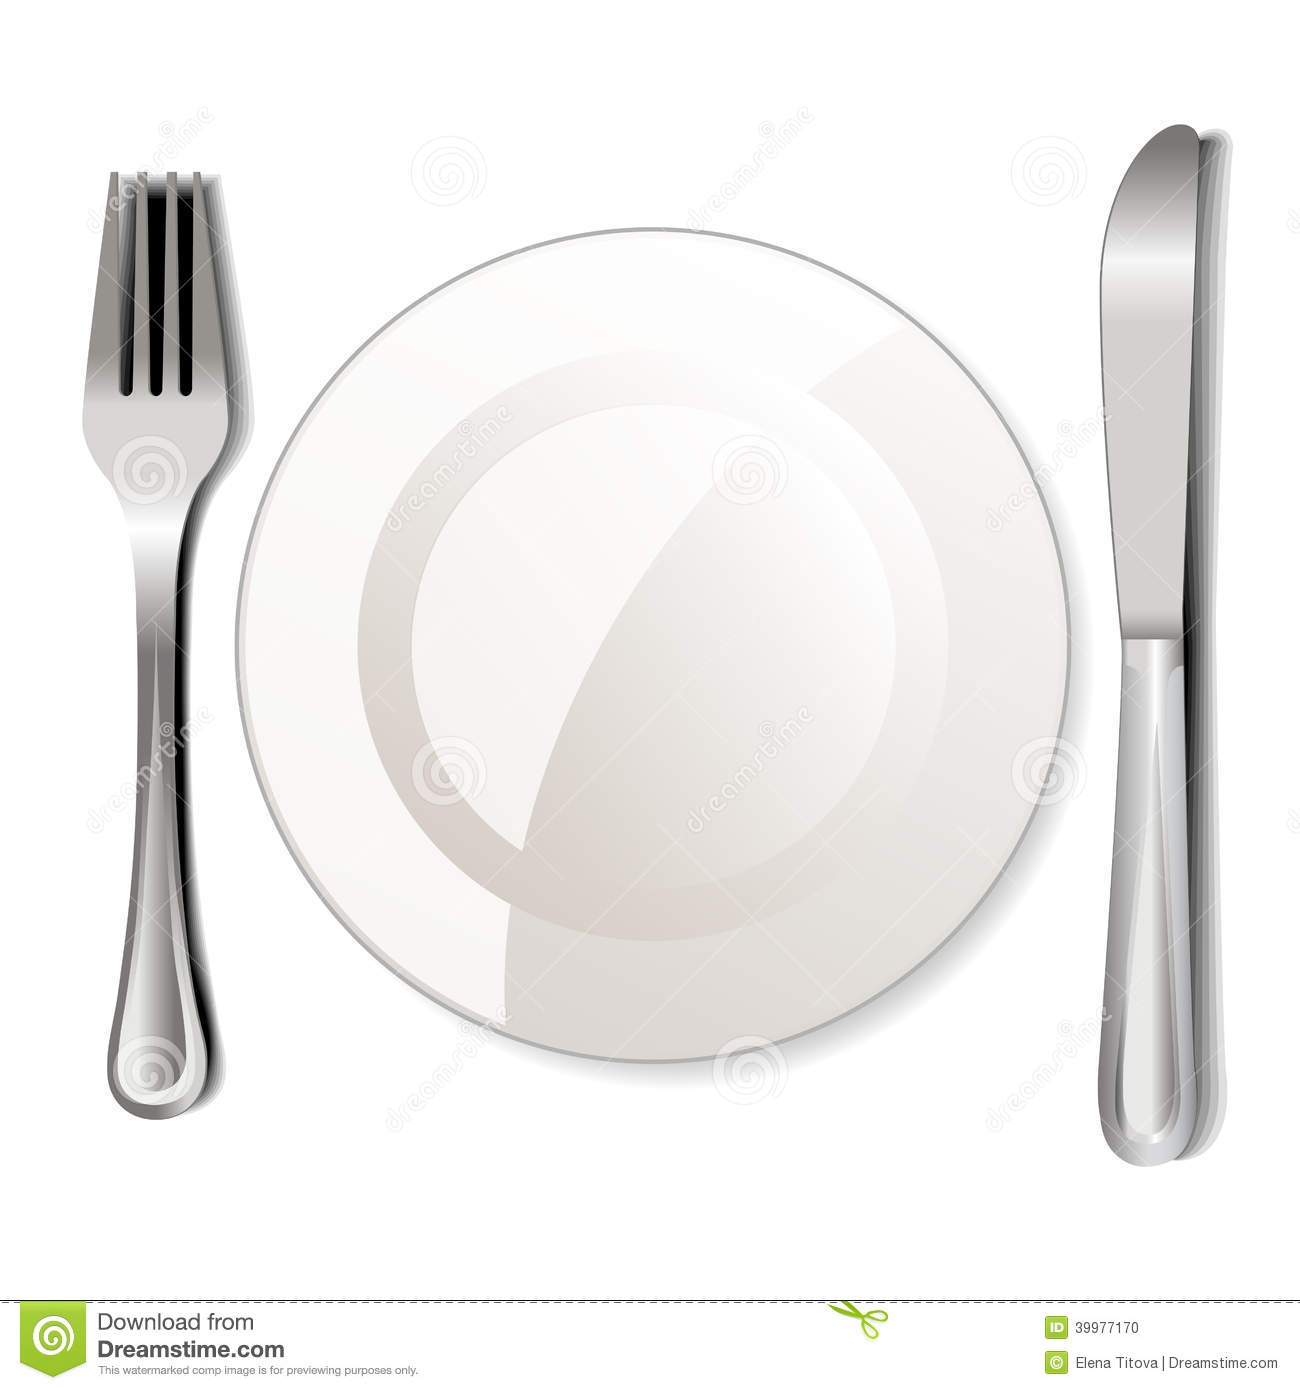 Dinner Plate Knife And Fork On A White Background Mr No Pr No 0 84 0